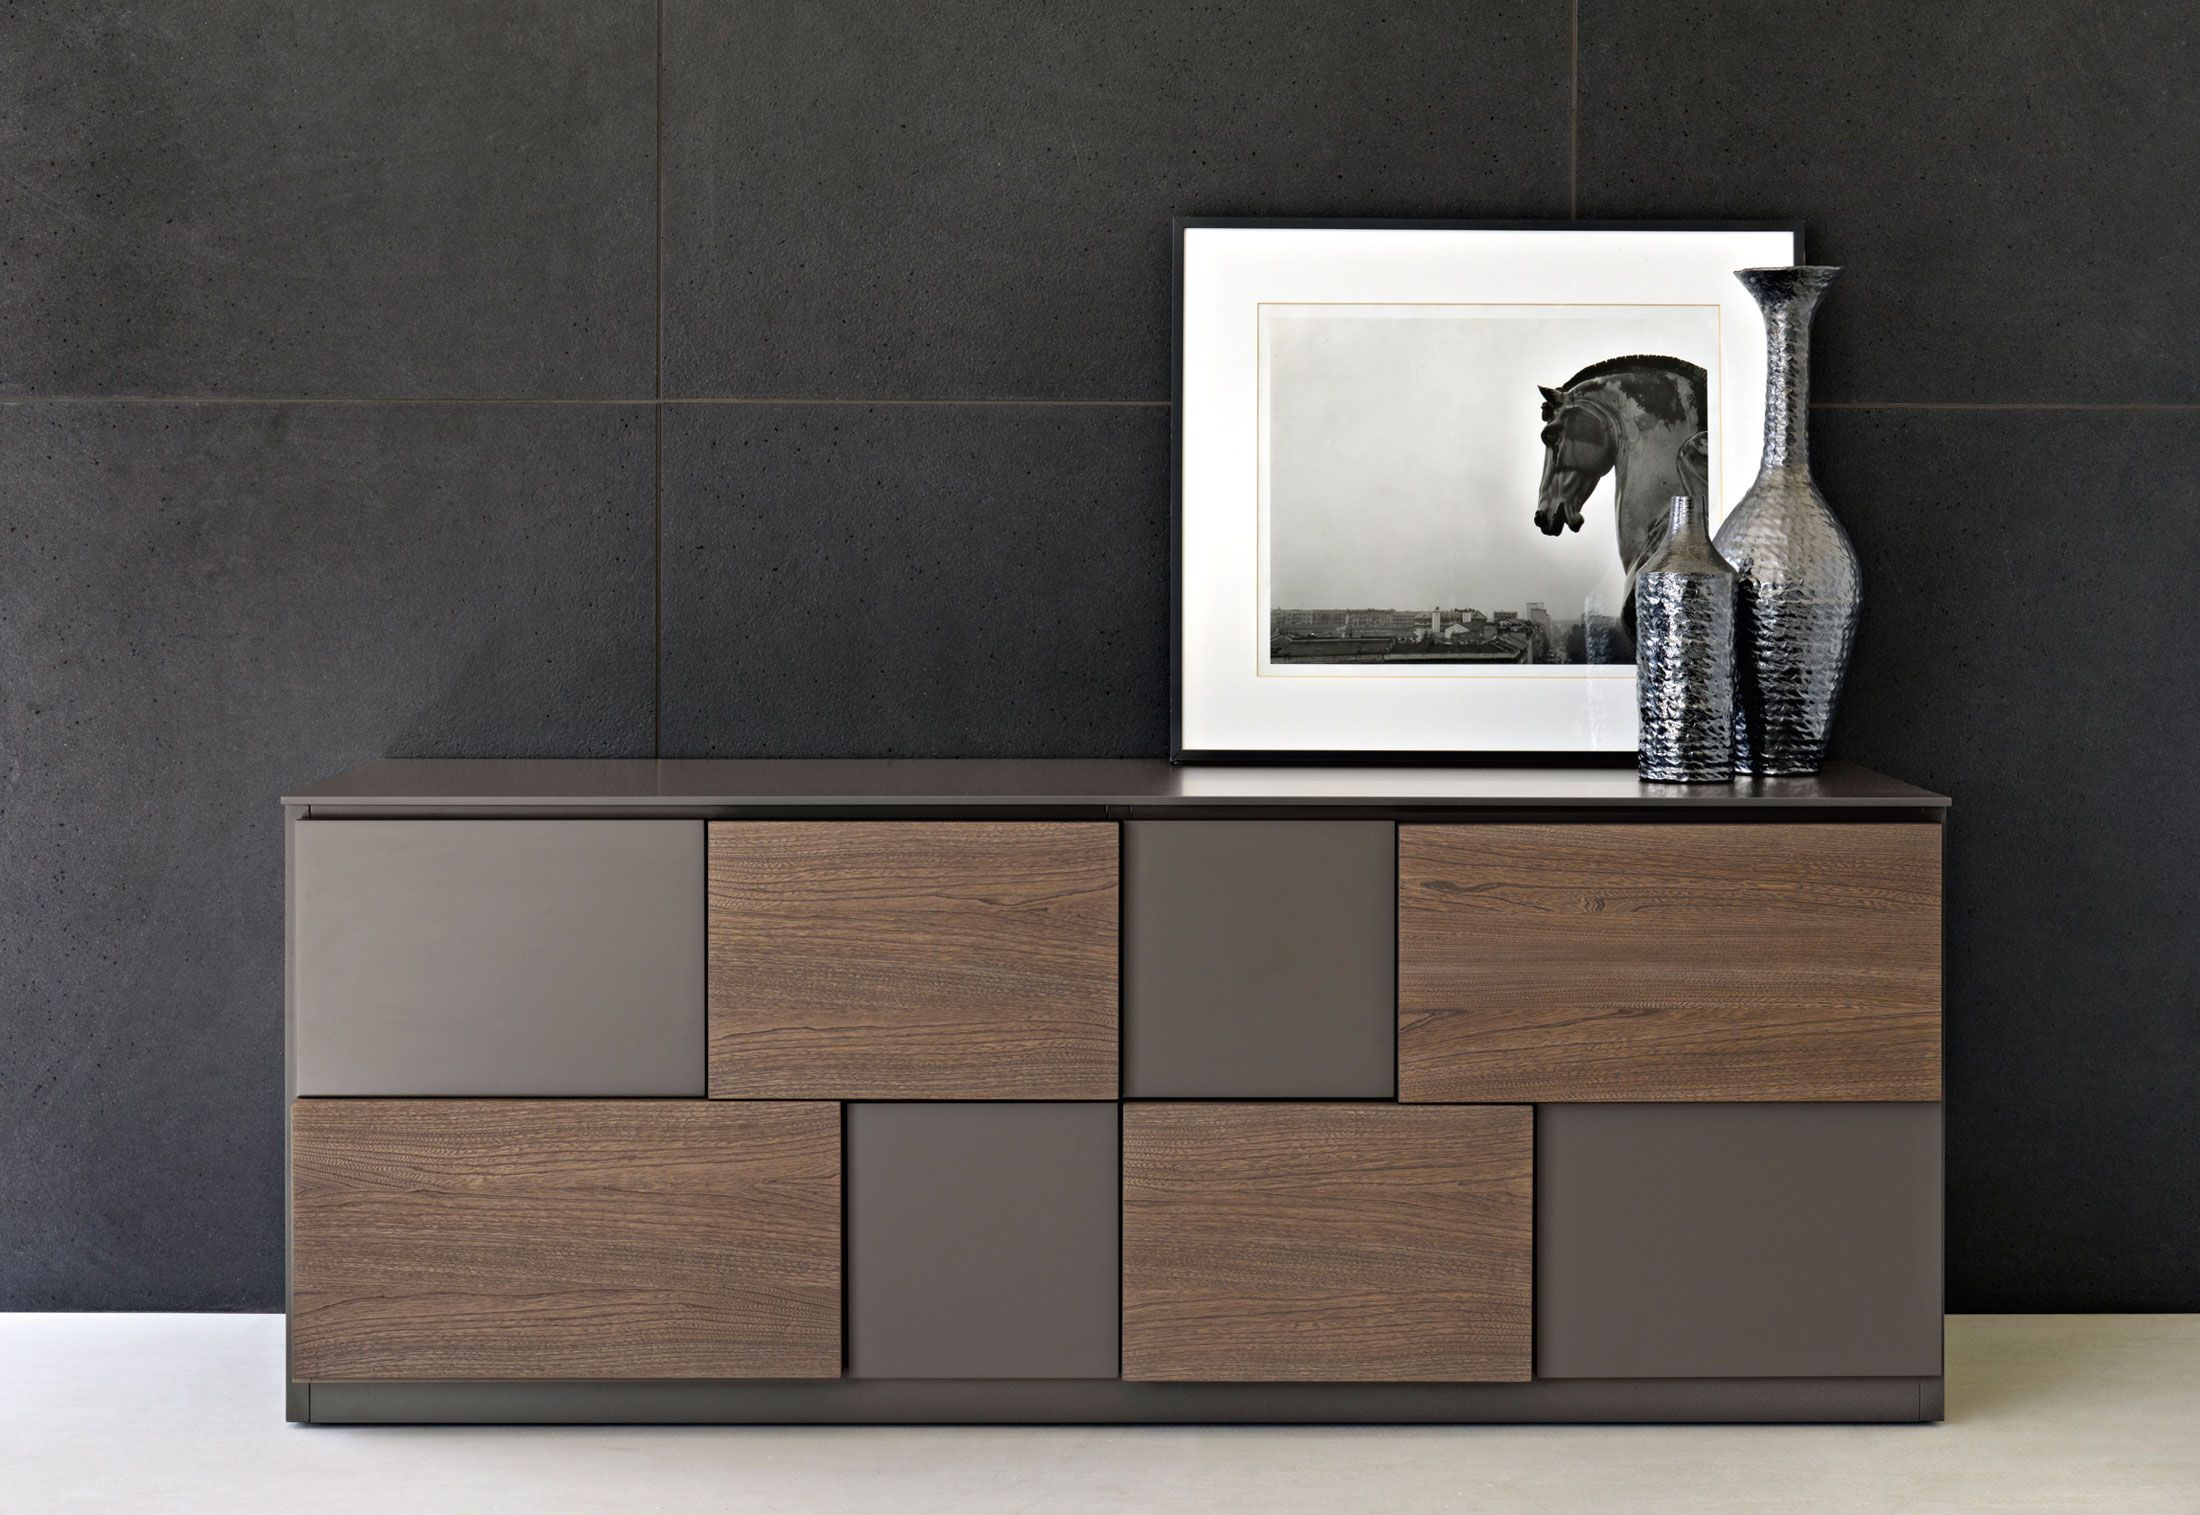 Molteni 505 plaisier we love molteni 505 pinterest muebles muebles salon and muebles sala - Molteni mobili catalogo ...